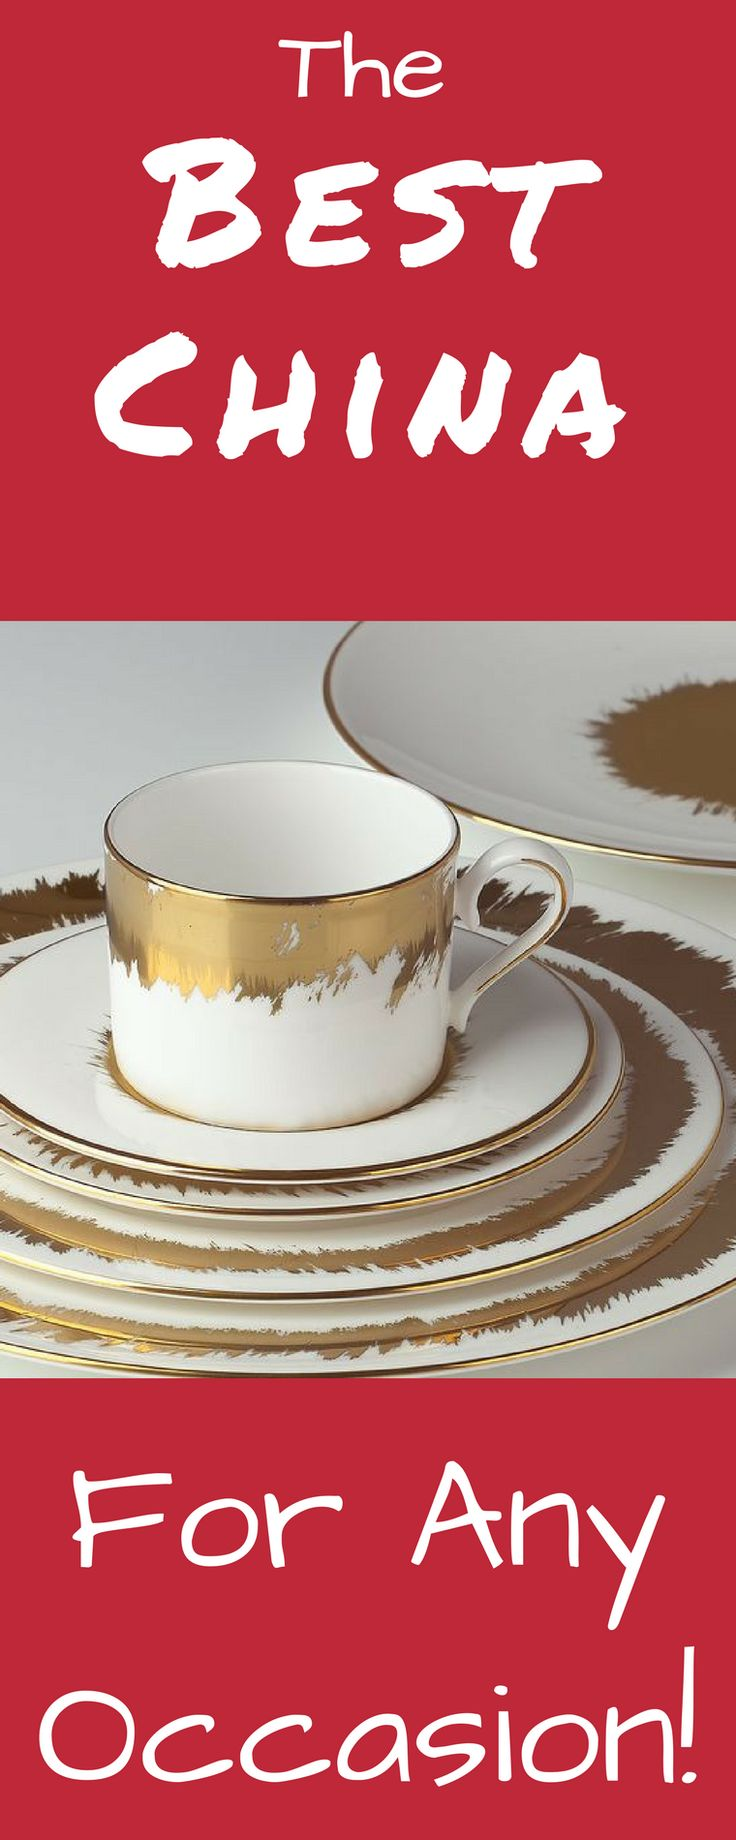 This gold and white china dinnerware is perfect for any occasion! It dresses up beautifully for a formal seated dinner but has enough modern flair to never seem stuffy. Pair it with romantic soft floral arrangements or go chic with glass votive candles. You can't go wrong! (affiliate link)